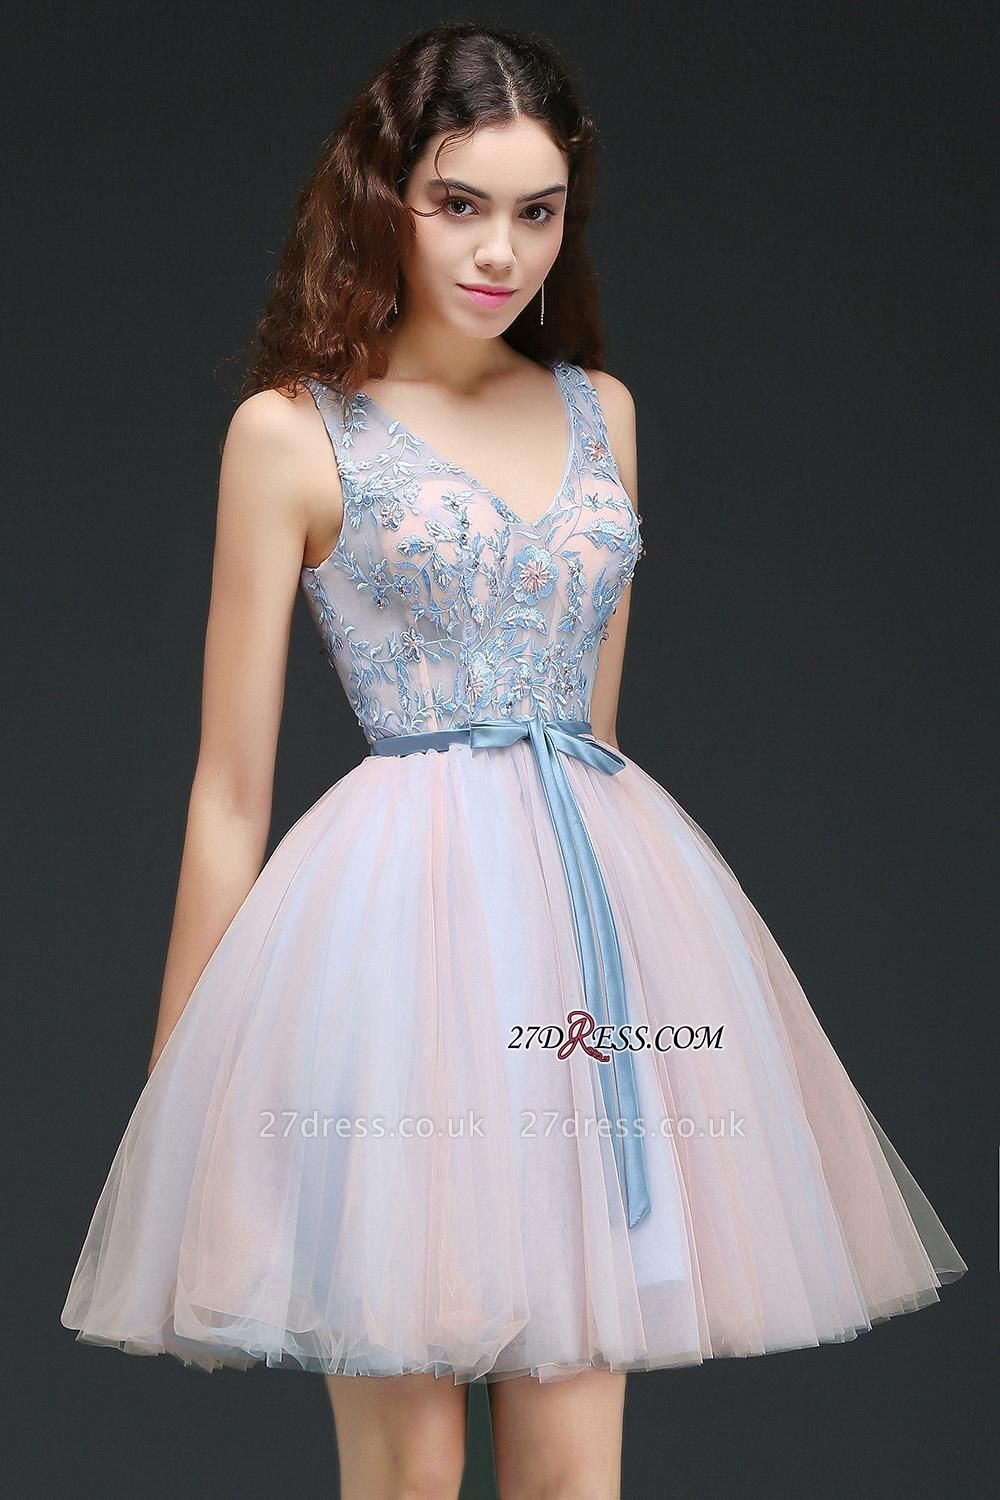 Fairy Sky-Blue V-Neck Puffy Flowers-Beaded Homecoming Dress UKes UK